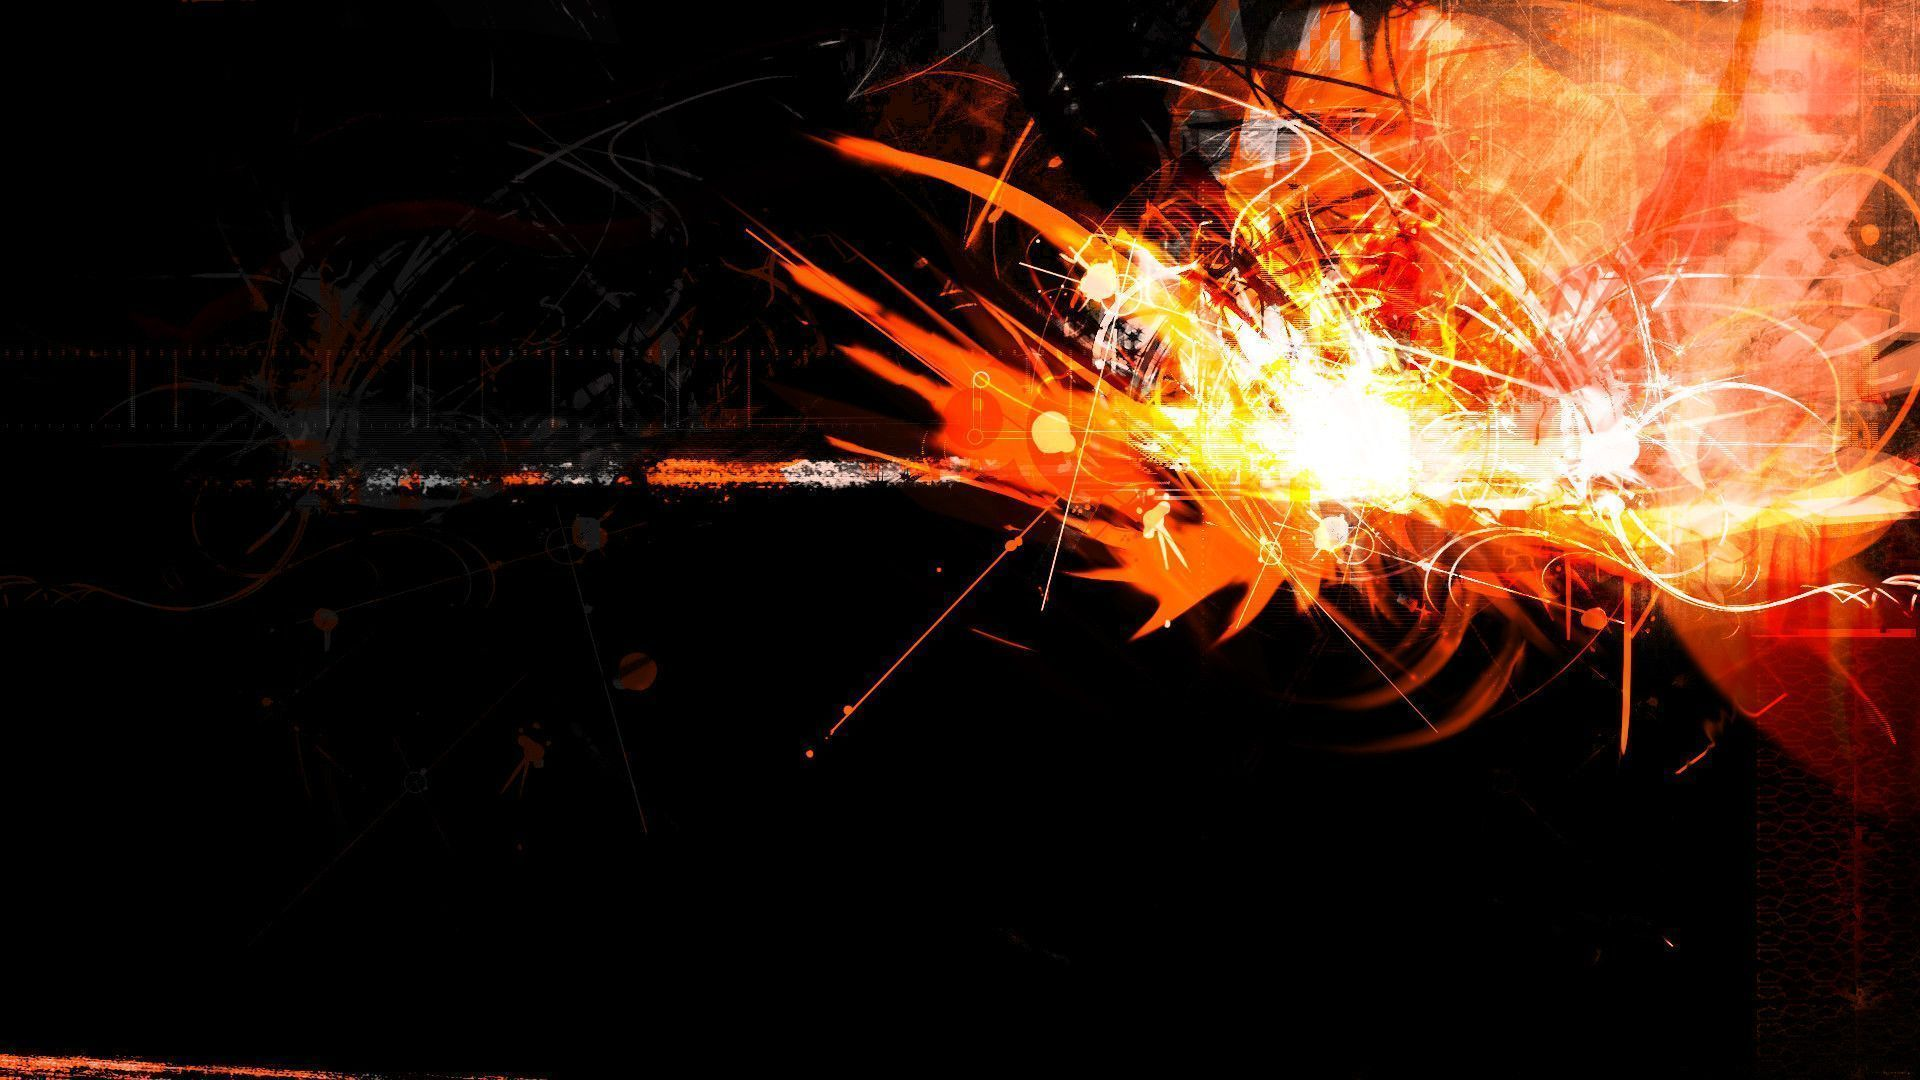 Orange Abstract Wallpaper | Backgrounds | Pinterest | Wallpaper for Cool Orange And Black Abstract Backgrounds  174mzq